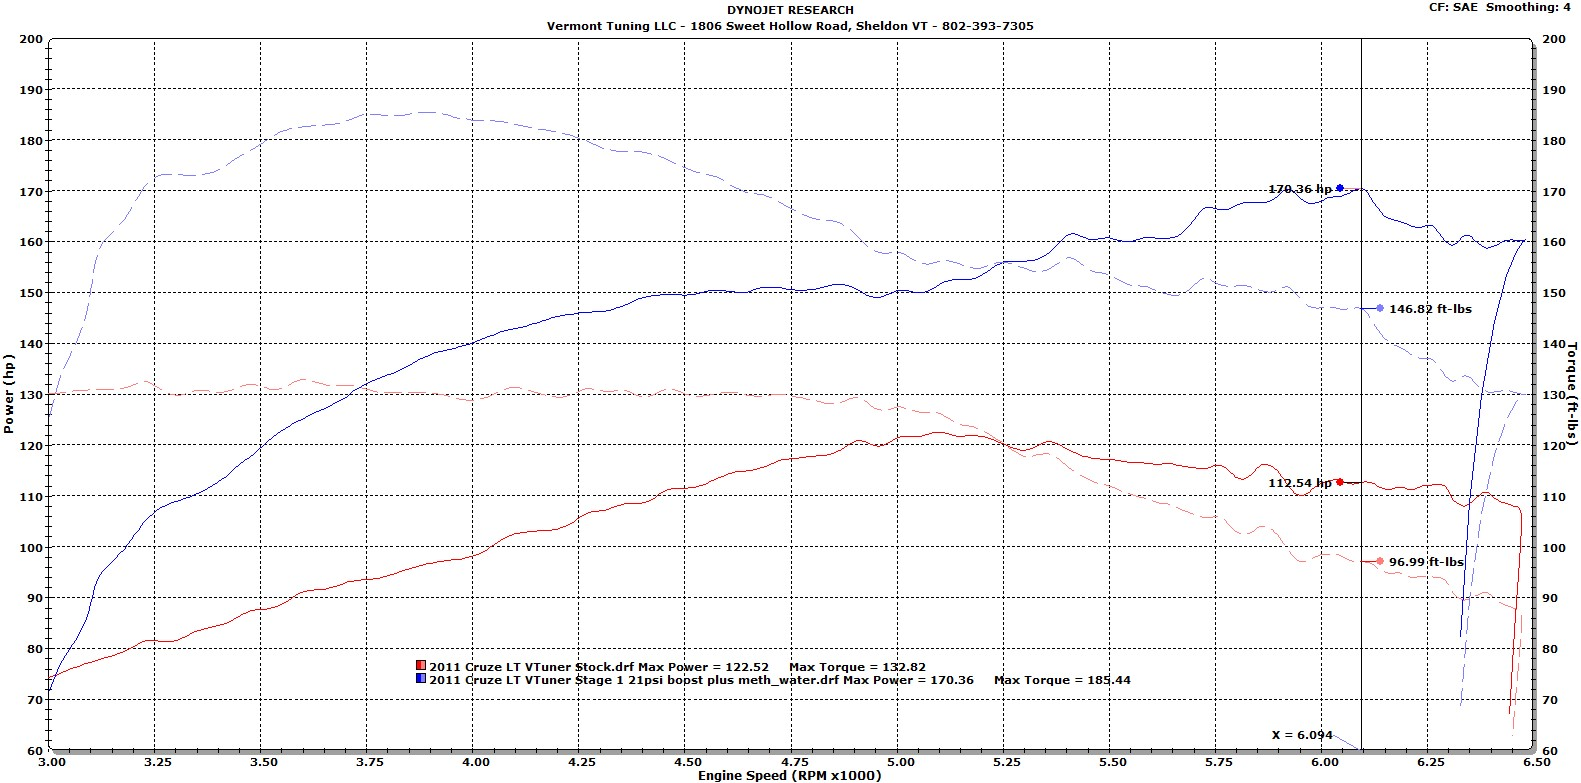 Cruze chevy cruze 1.4 turbo performance upgrades : Vermont Tuning LLC | Topic: Cruze Dyno Data